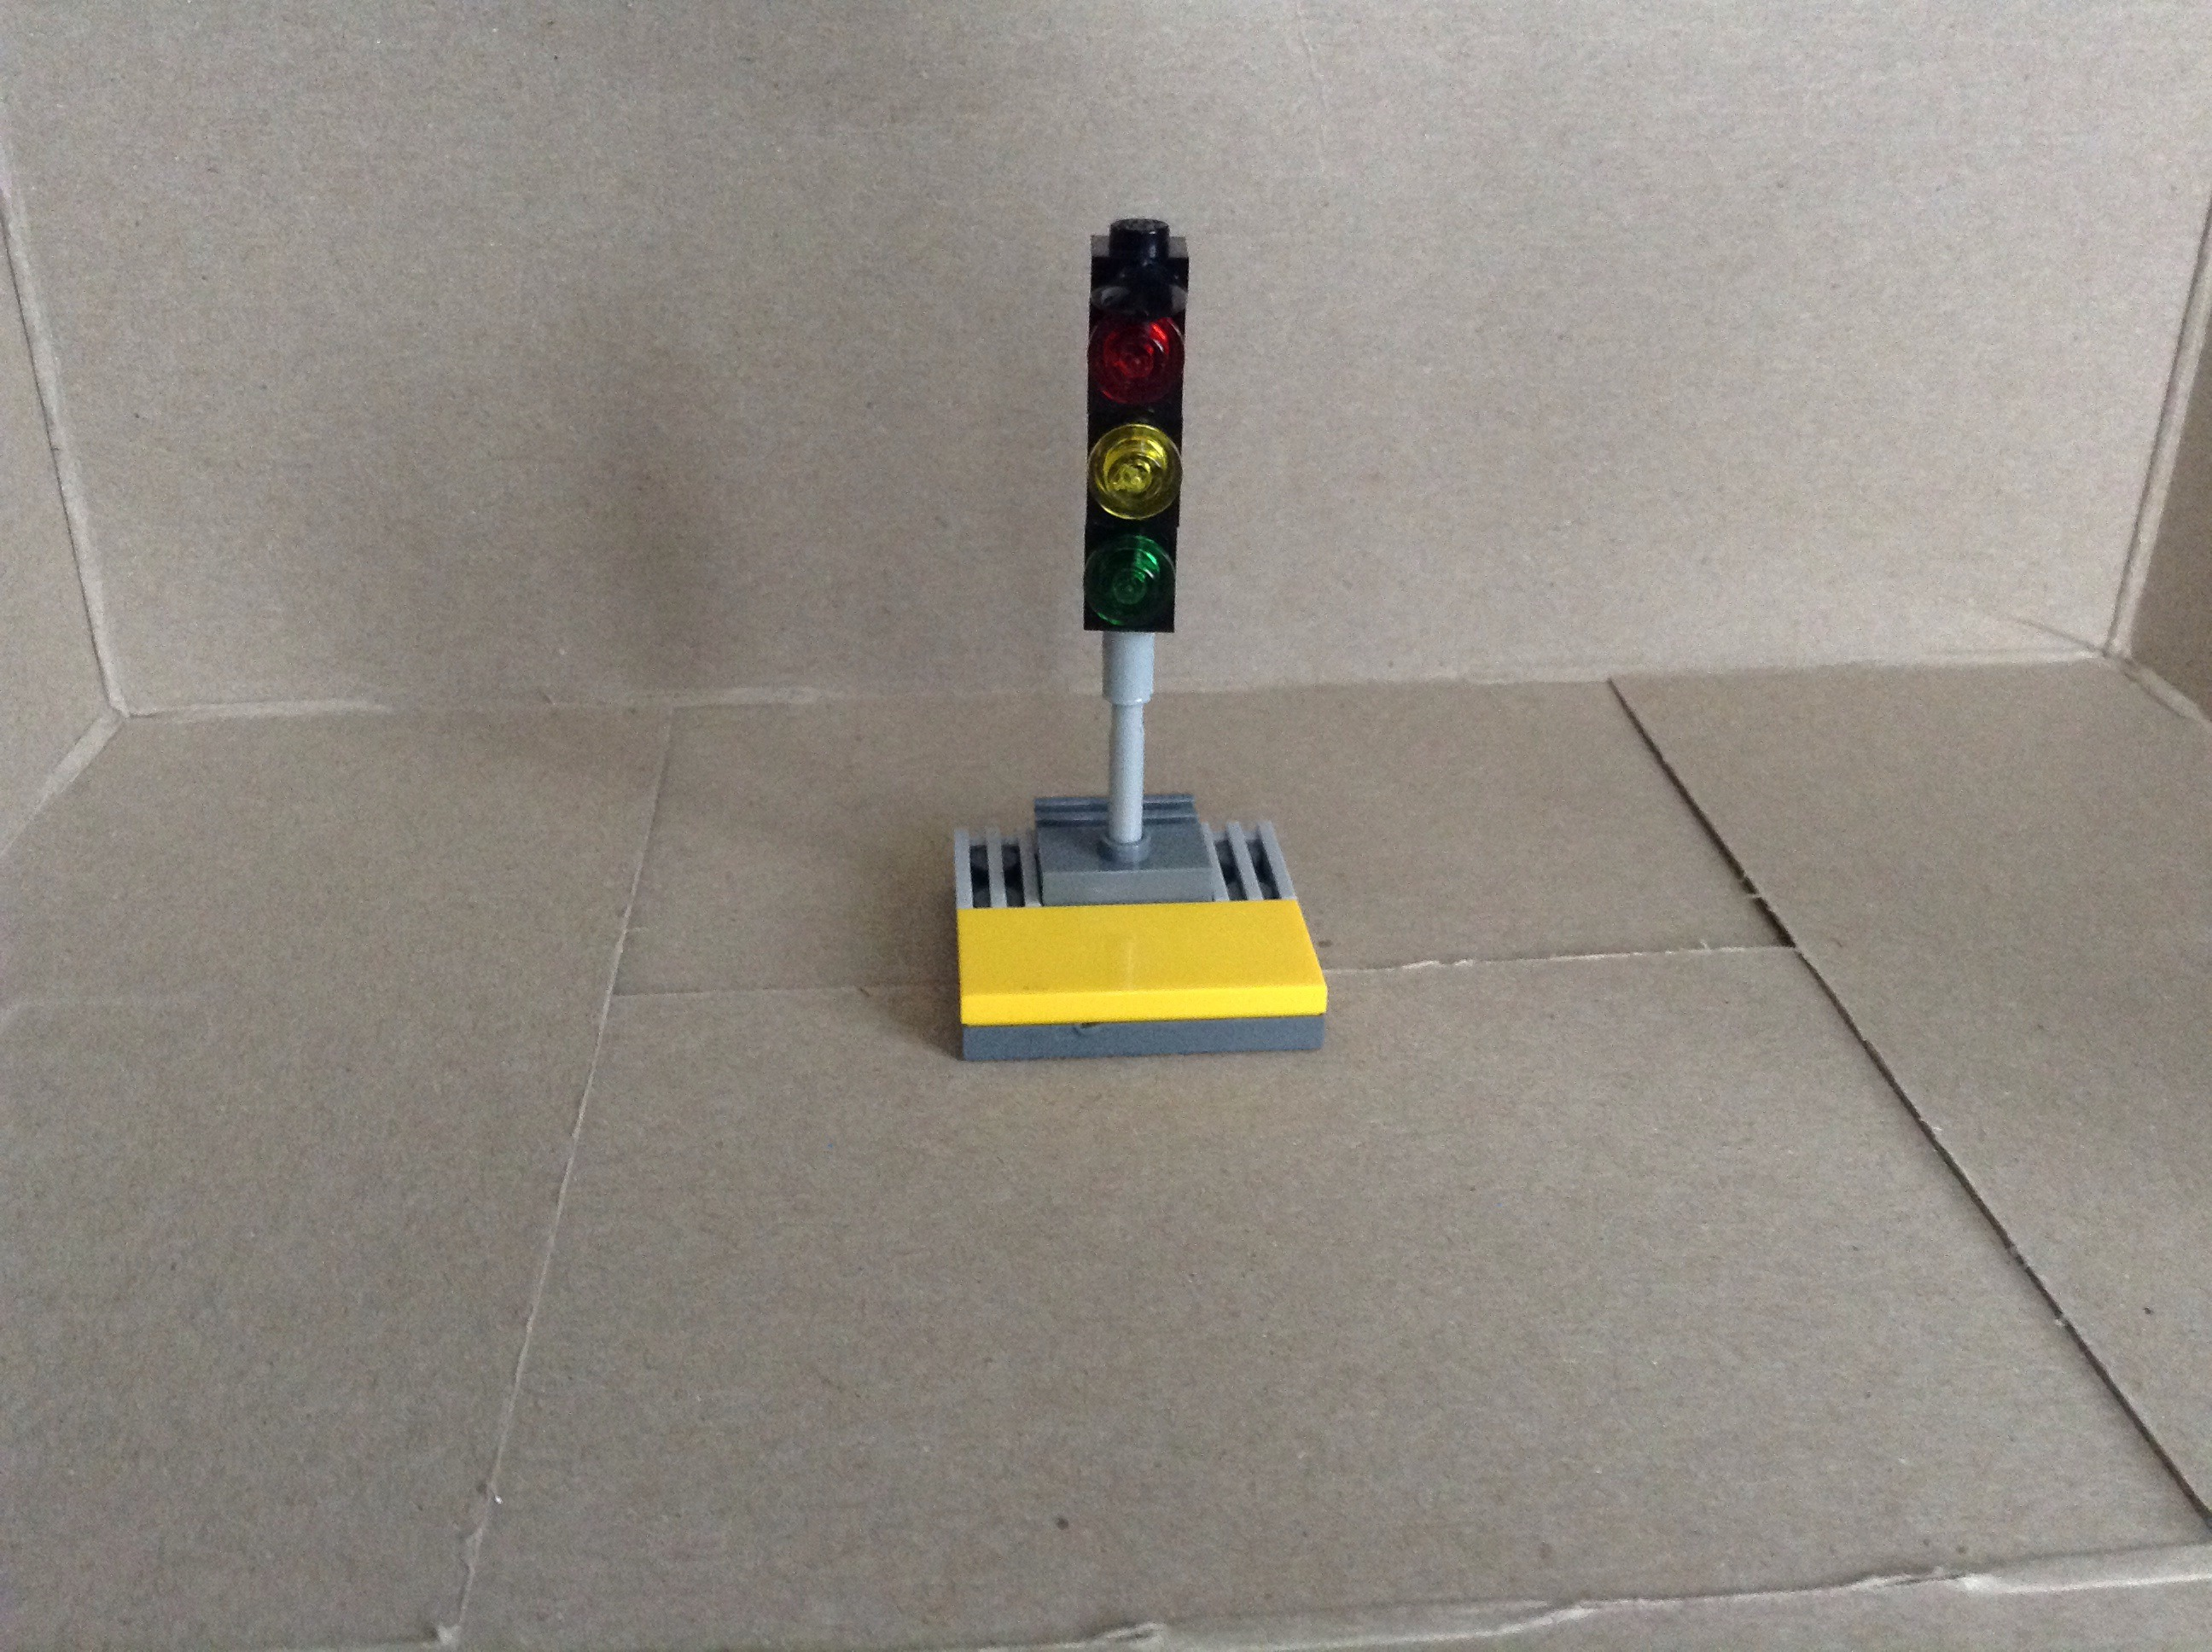 Picture of How to Make a Lego Traffic Light in 3 Easy Steps